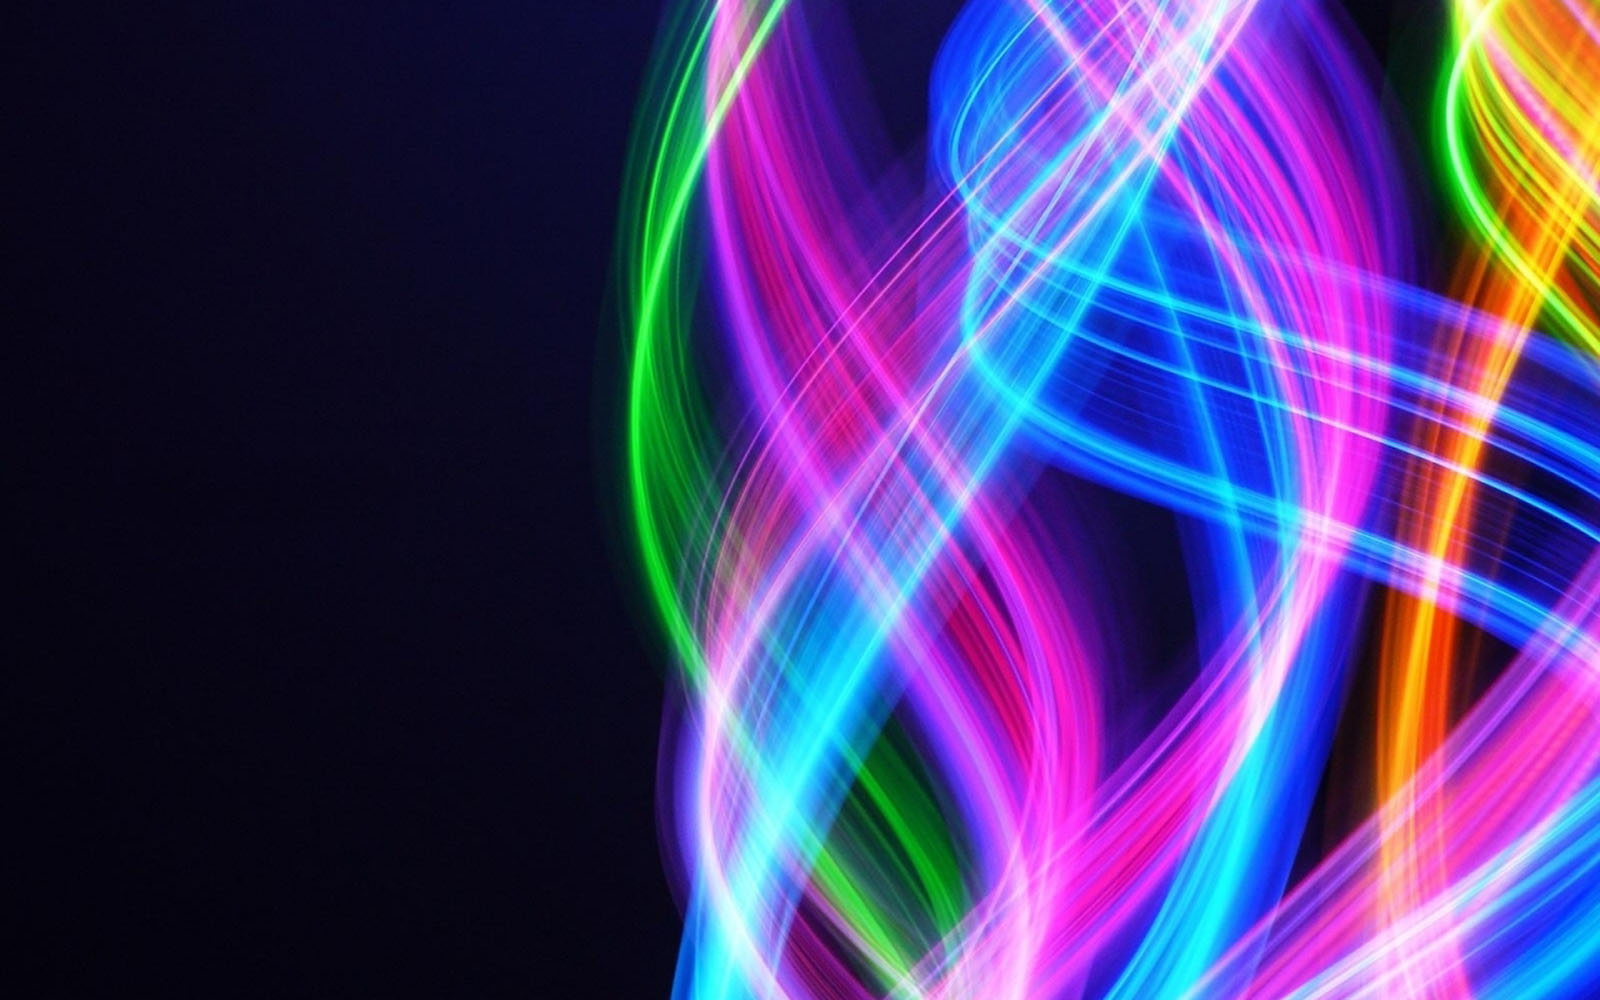 Neon Cool Backgrounds Wallpaper | Best Free Wallpaper | Neon Stuff